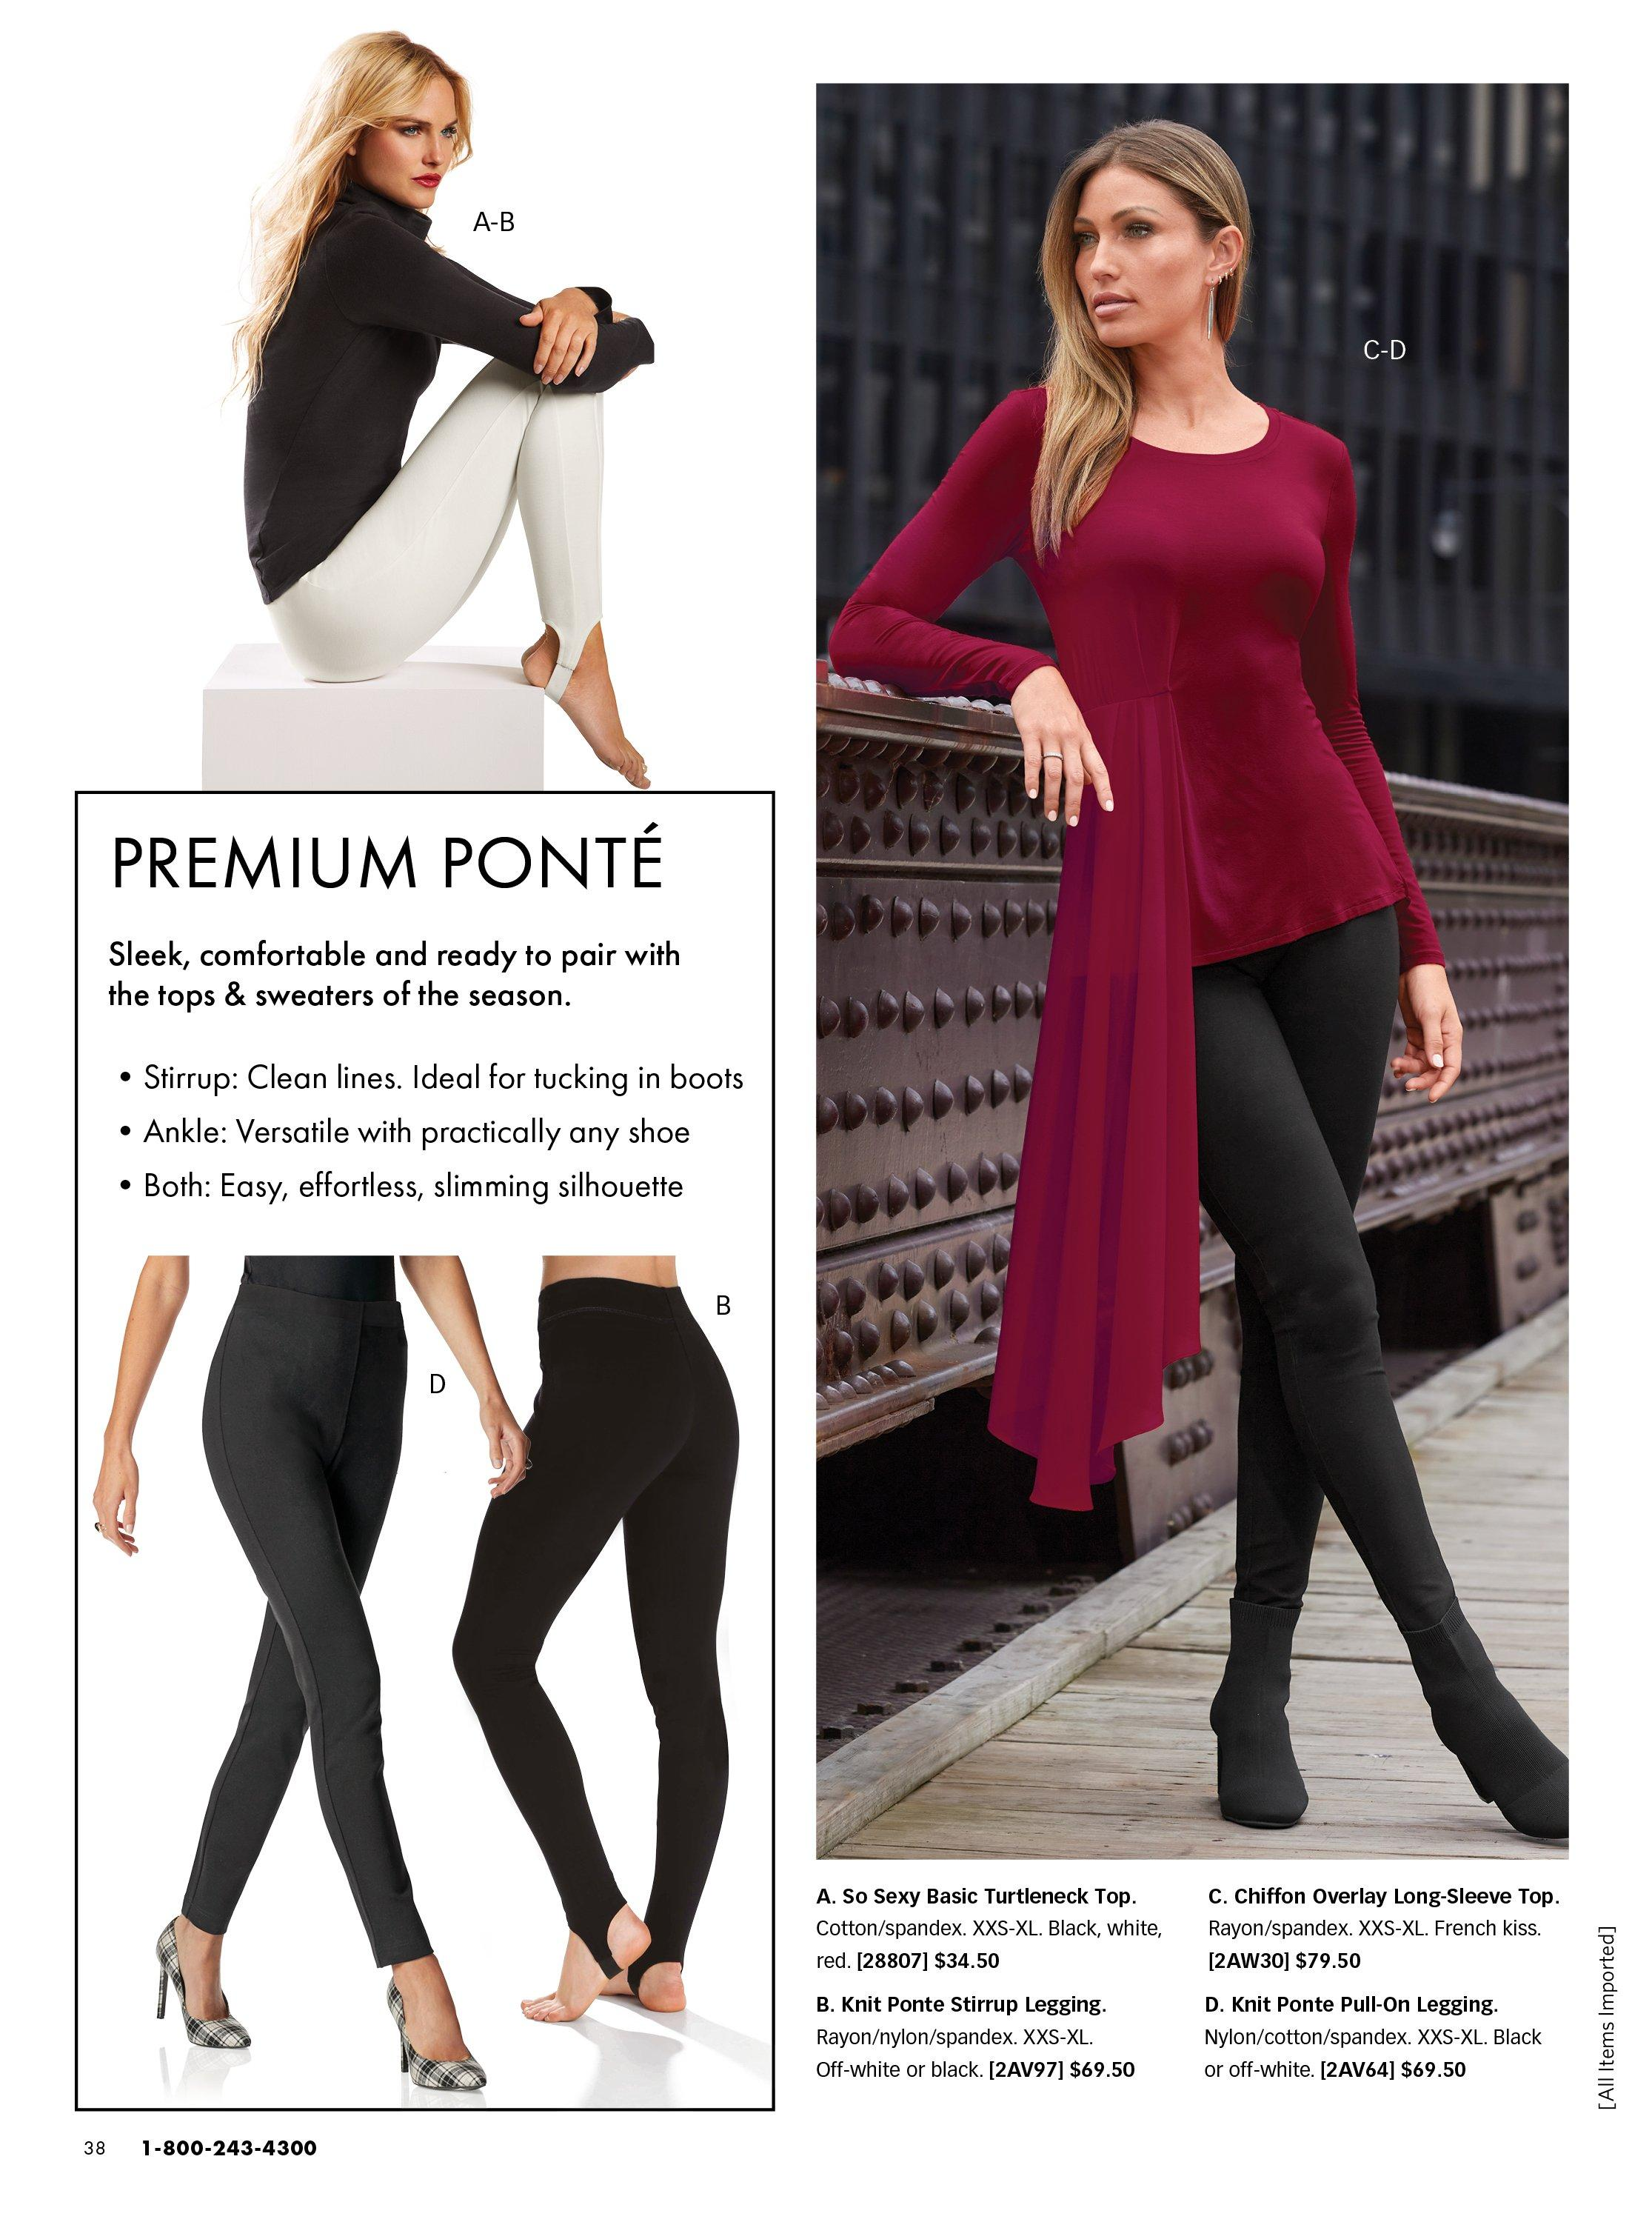 top left model wearing white stirrup ponte leggings and a black turtleneck long-sleeve top. bottom right panel shows black ponte leggings and black stirrup ponte leggings. right model wearing a red long-sleeve chiffon overlay top, black ponte leggings, and black heeled booties.